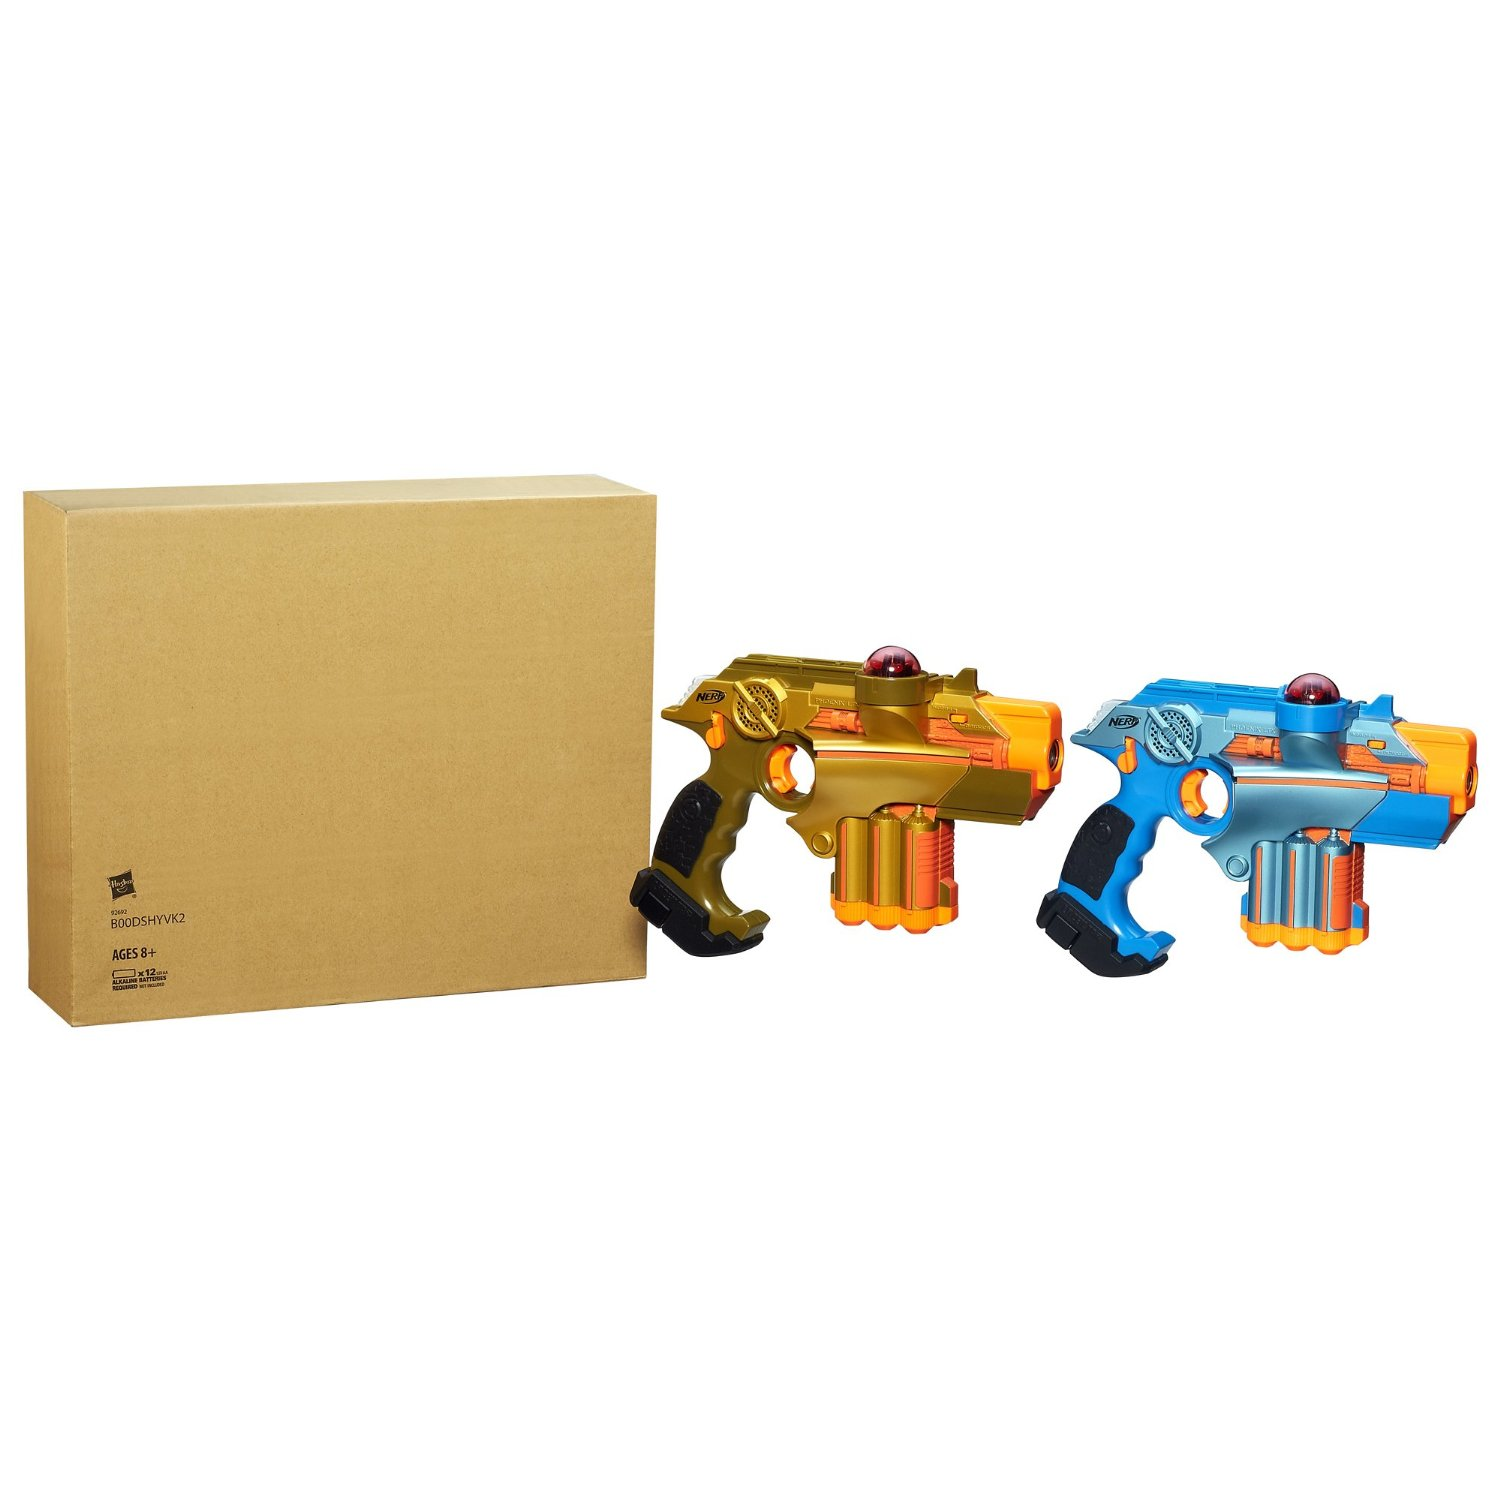 Best Laser Tag Toys : Best laser tag sets for kids and adults webnuggetz